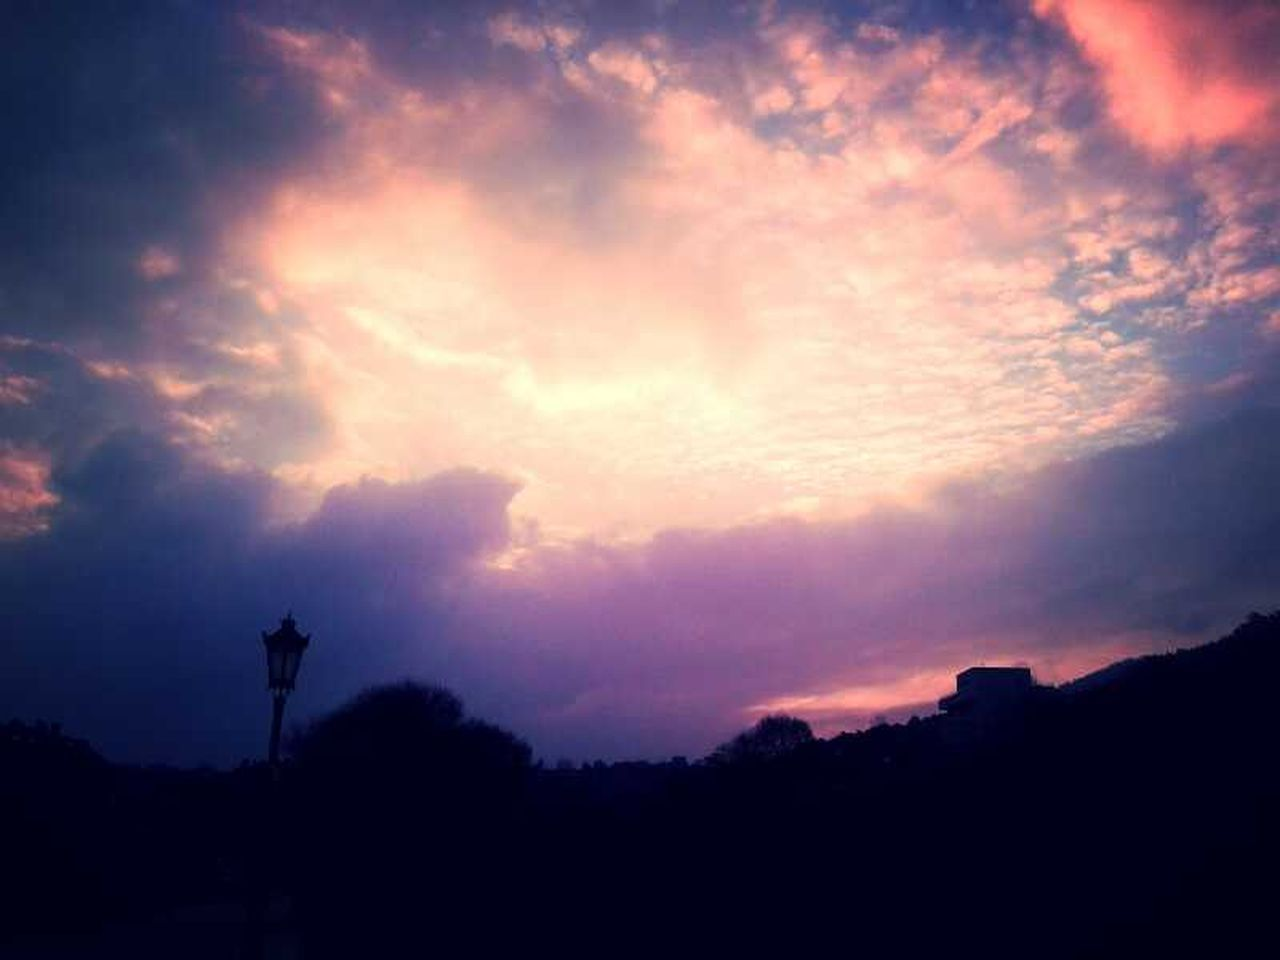 silhouette, sunset, cloud - sky, no people, sky, outdoors, tree, nature, night, scenics, beauty in nature